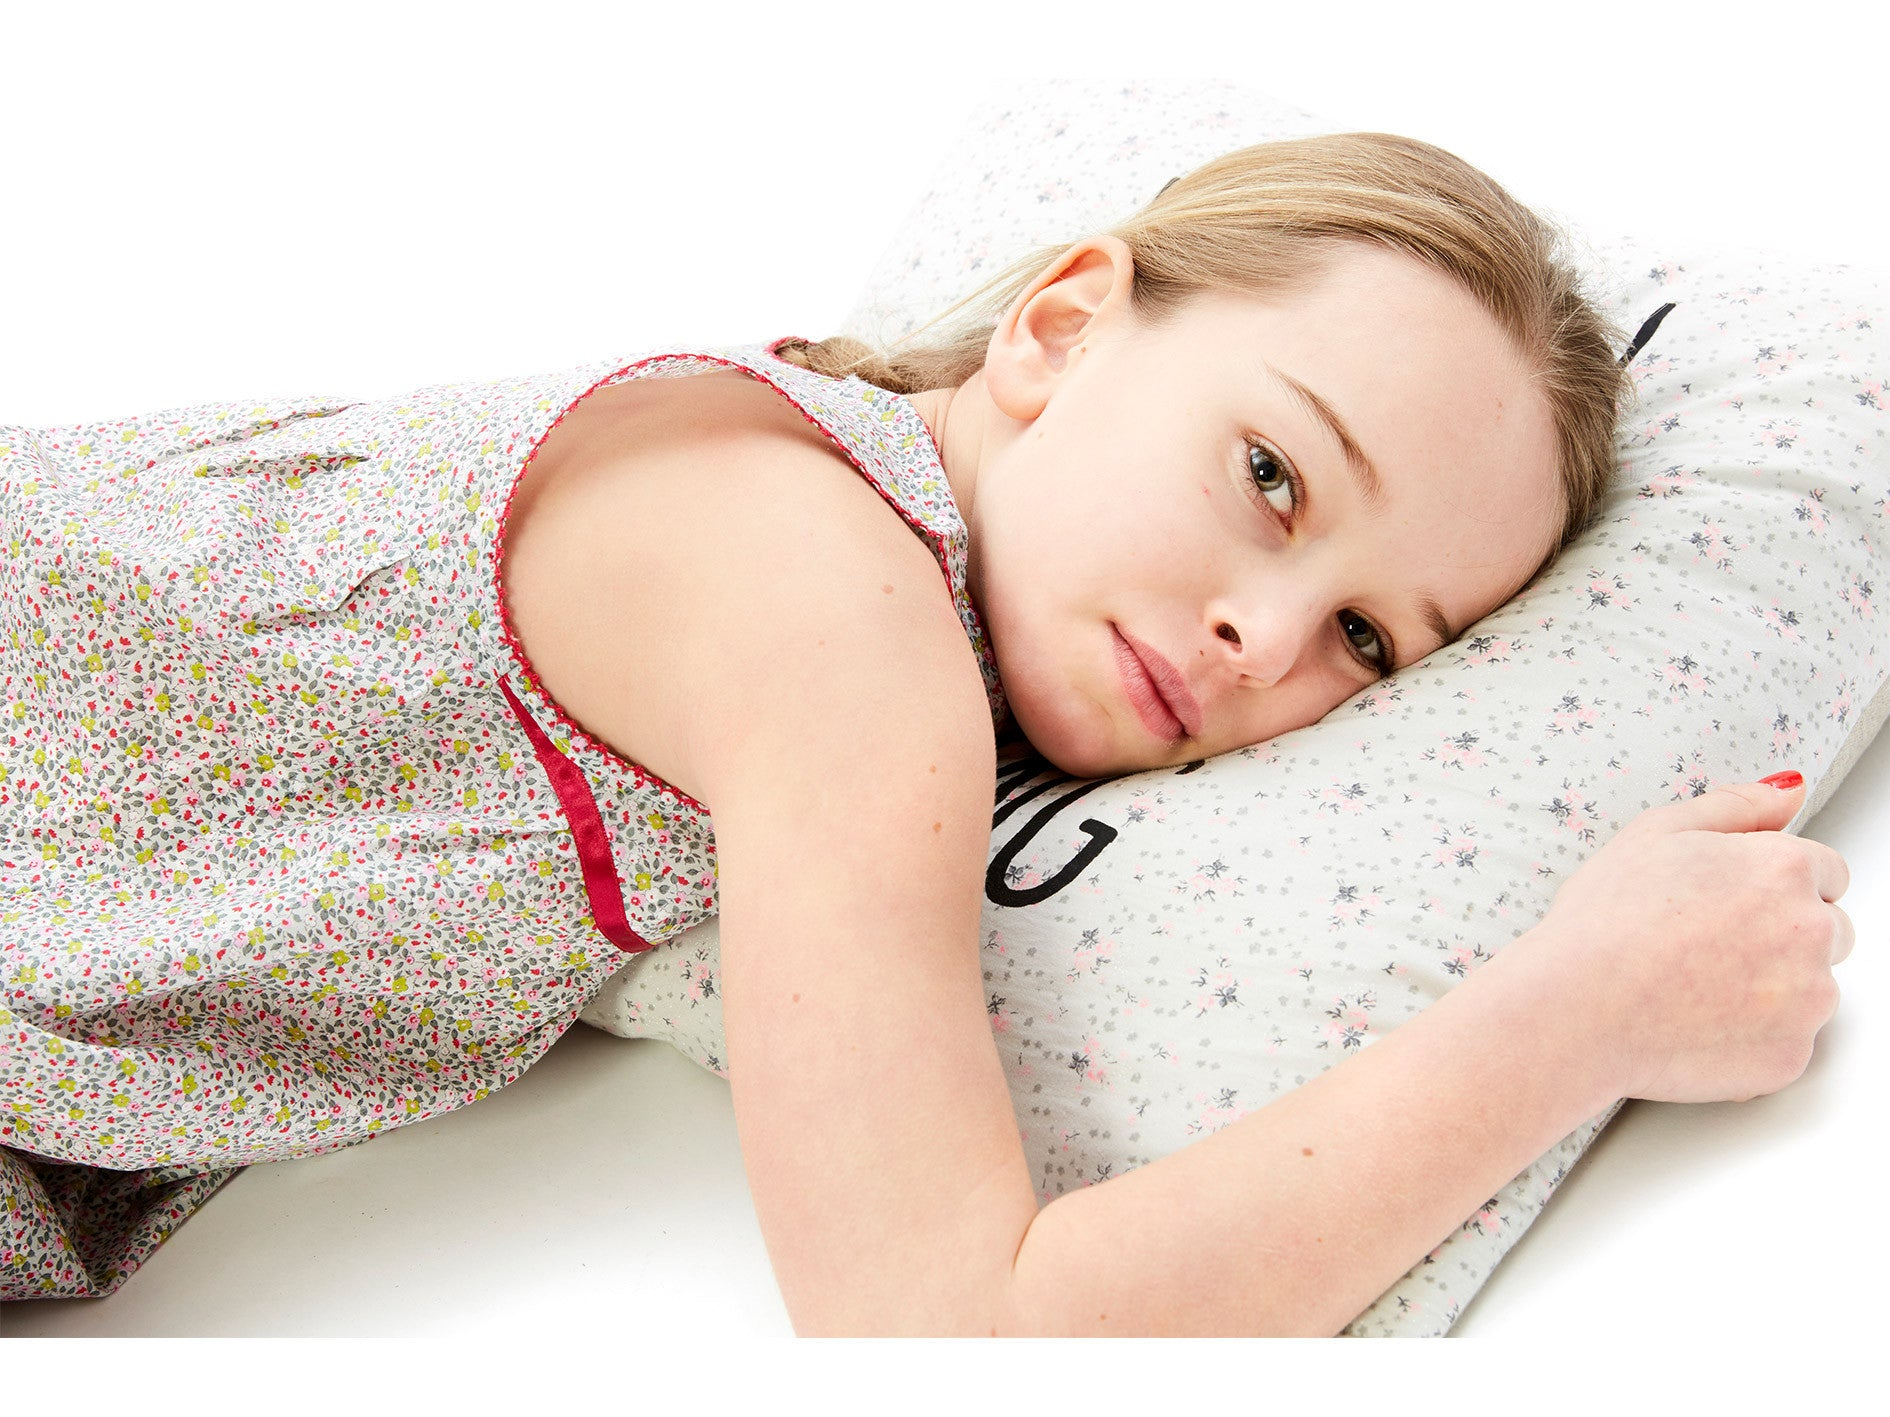 How is technology affecting our children's sleep?